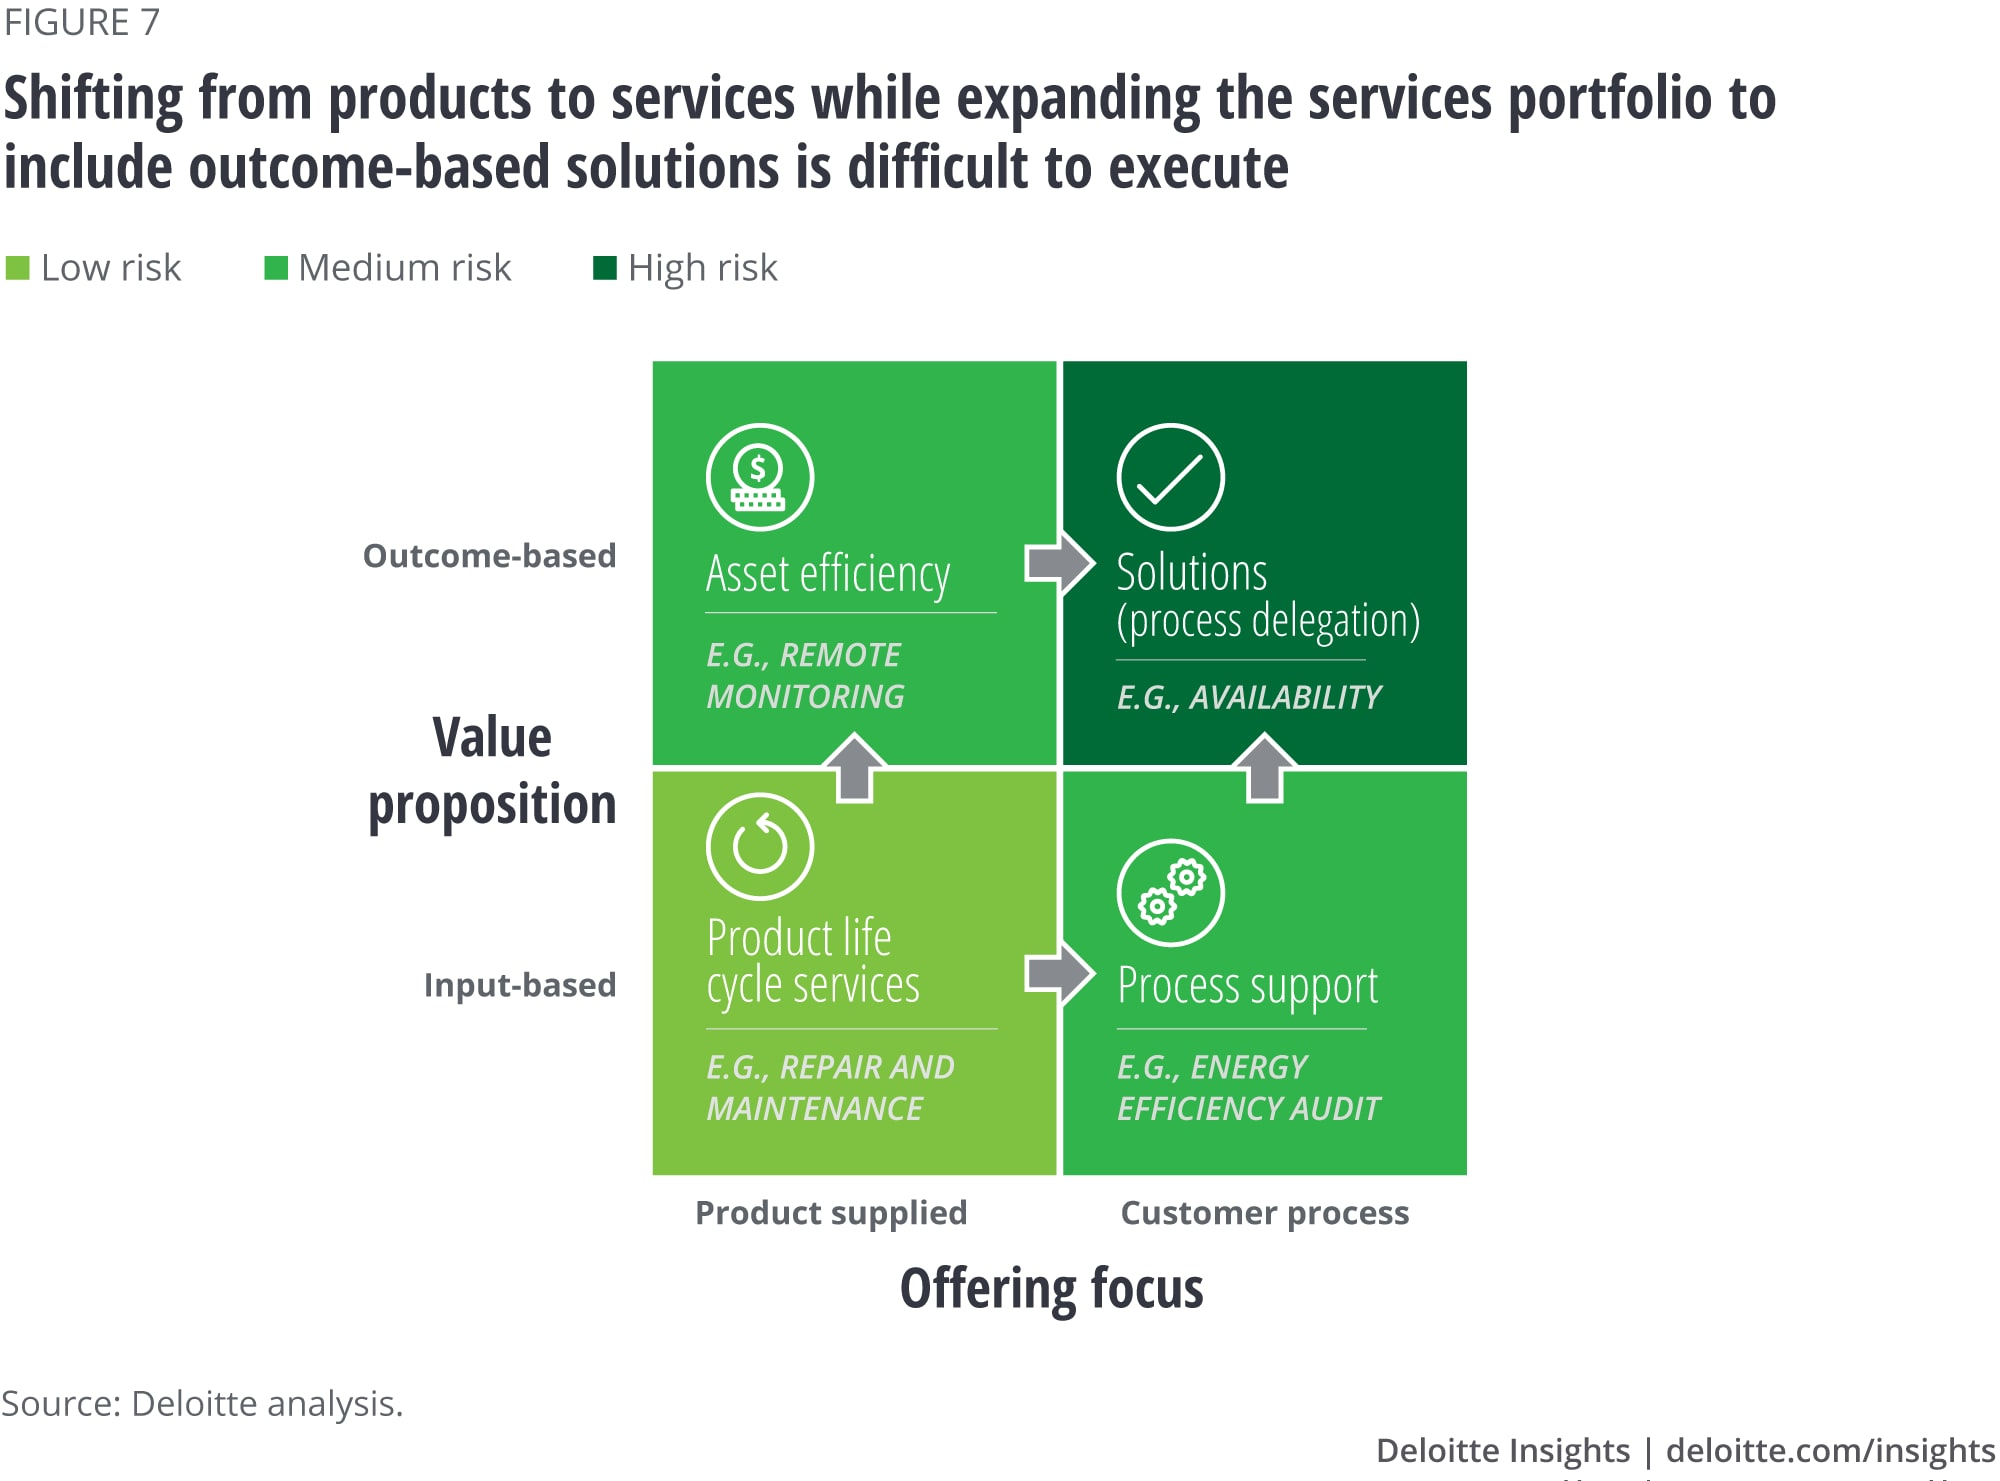 Shifting from products to services while expanding the services portfolio to include outcome-based solutions is difficult to execute